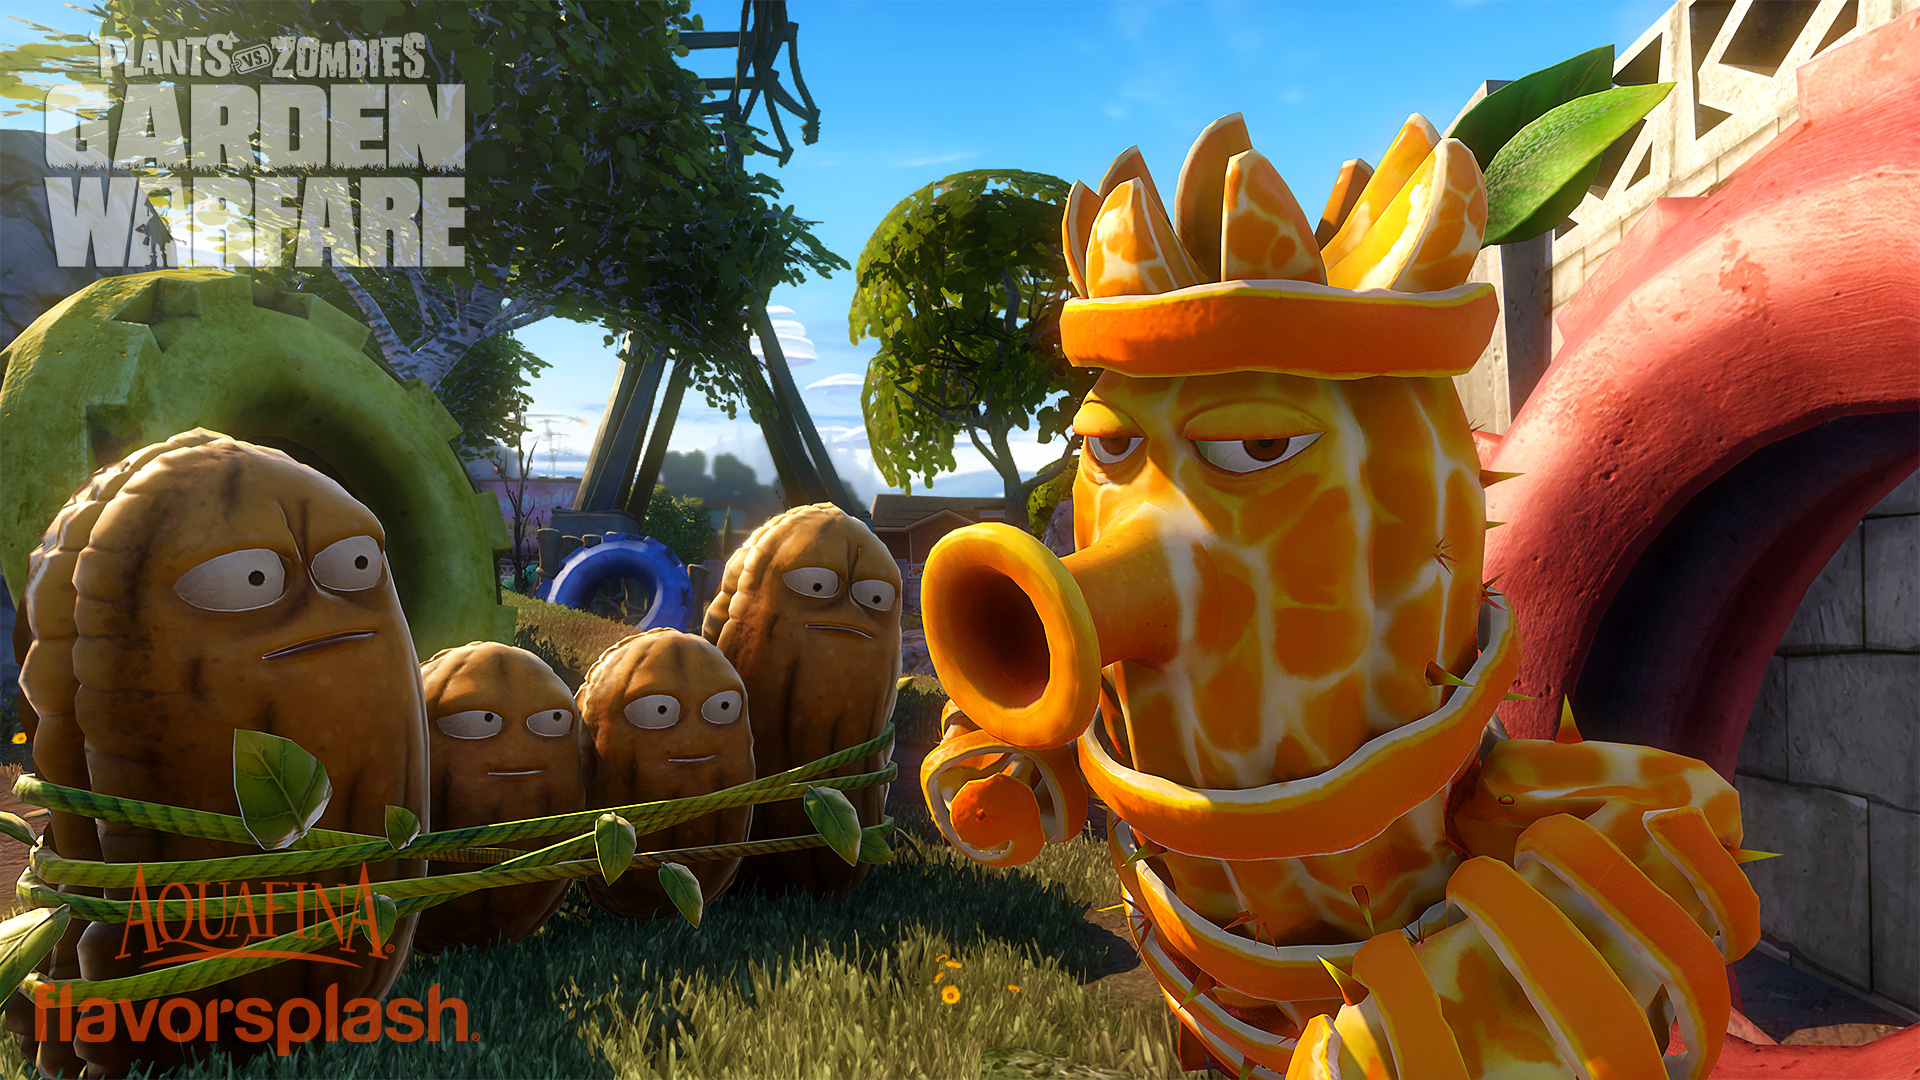 Plants vs. Zombies: Garden Warfare - Aquafina characters - Polygon